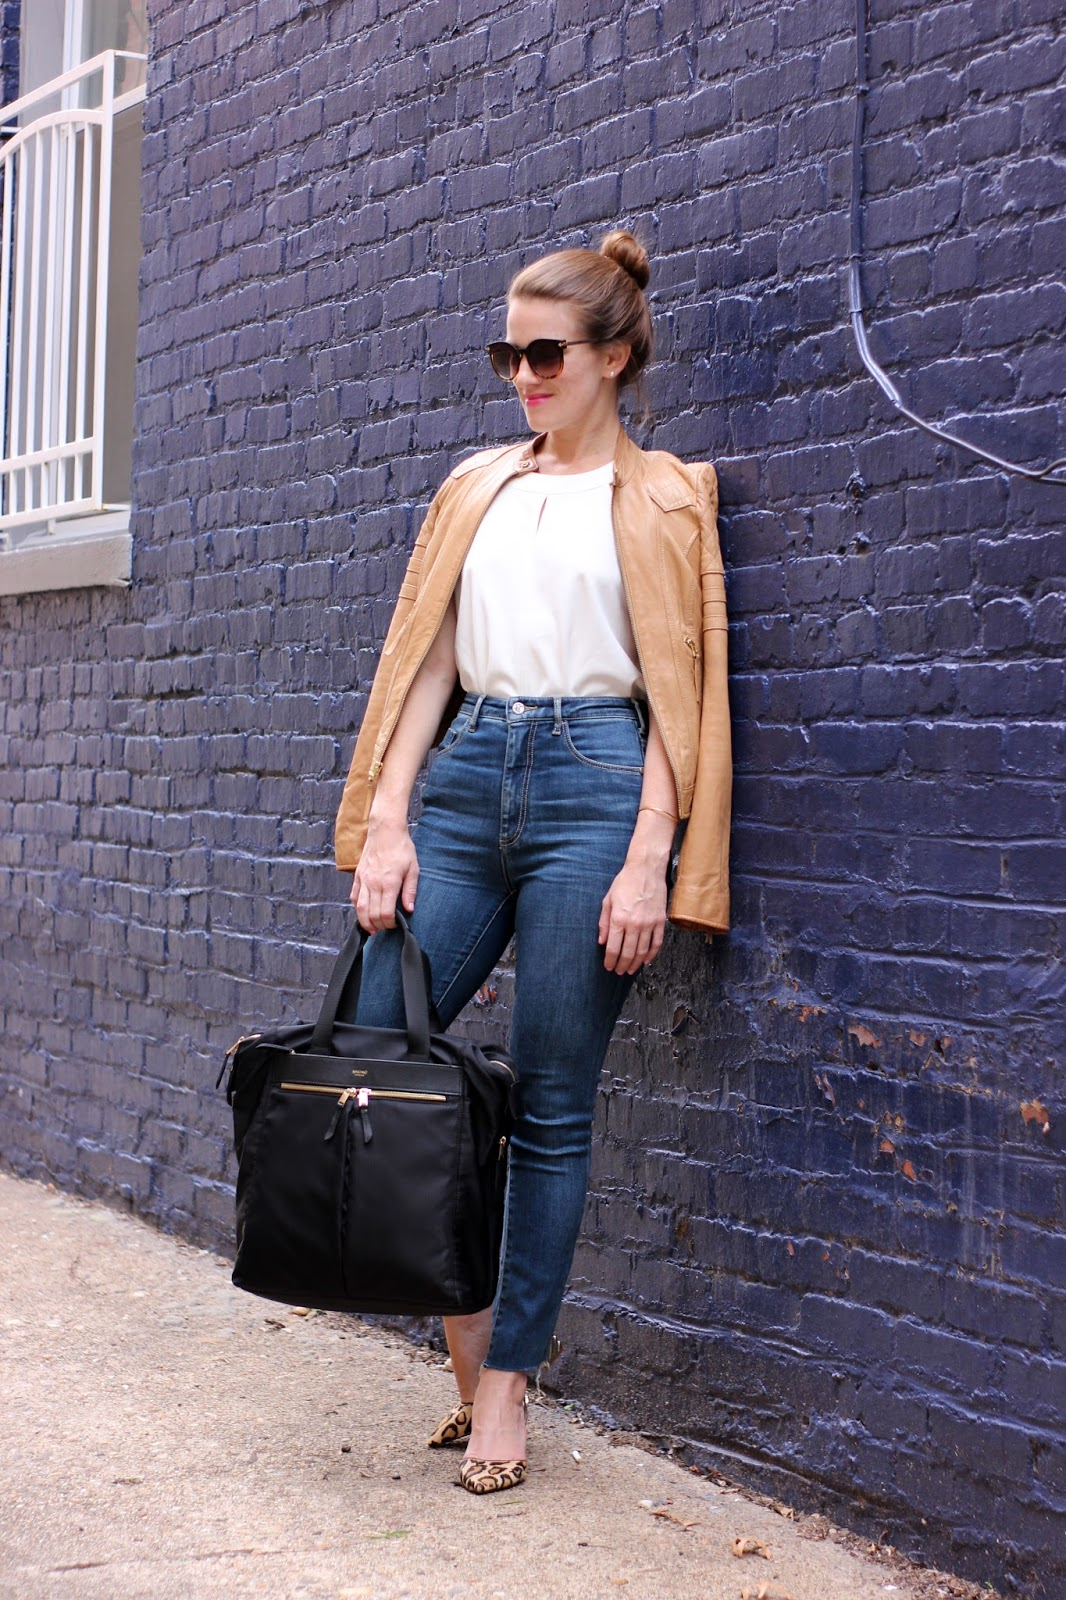 Leather Jacket, High Waisted Jeans, Top Knot. Fall Perfection.